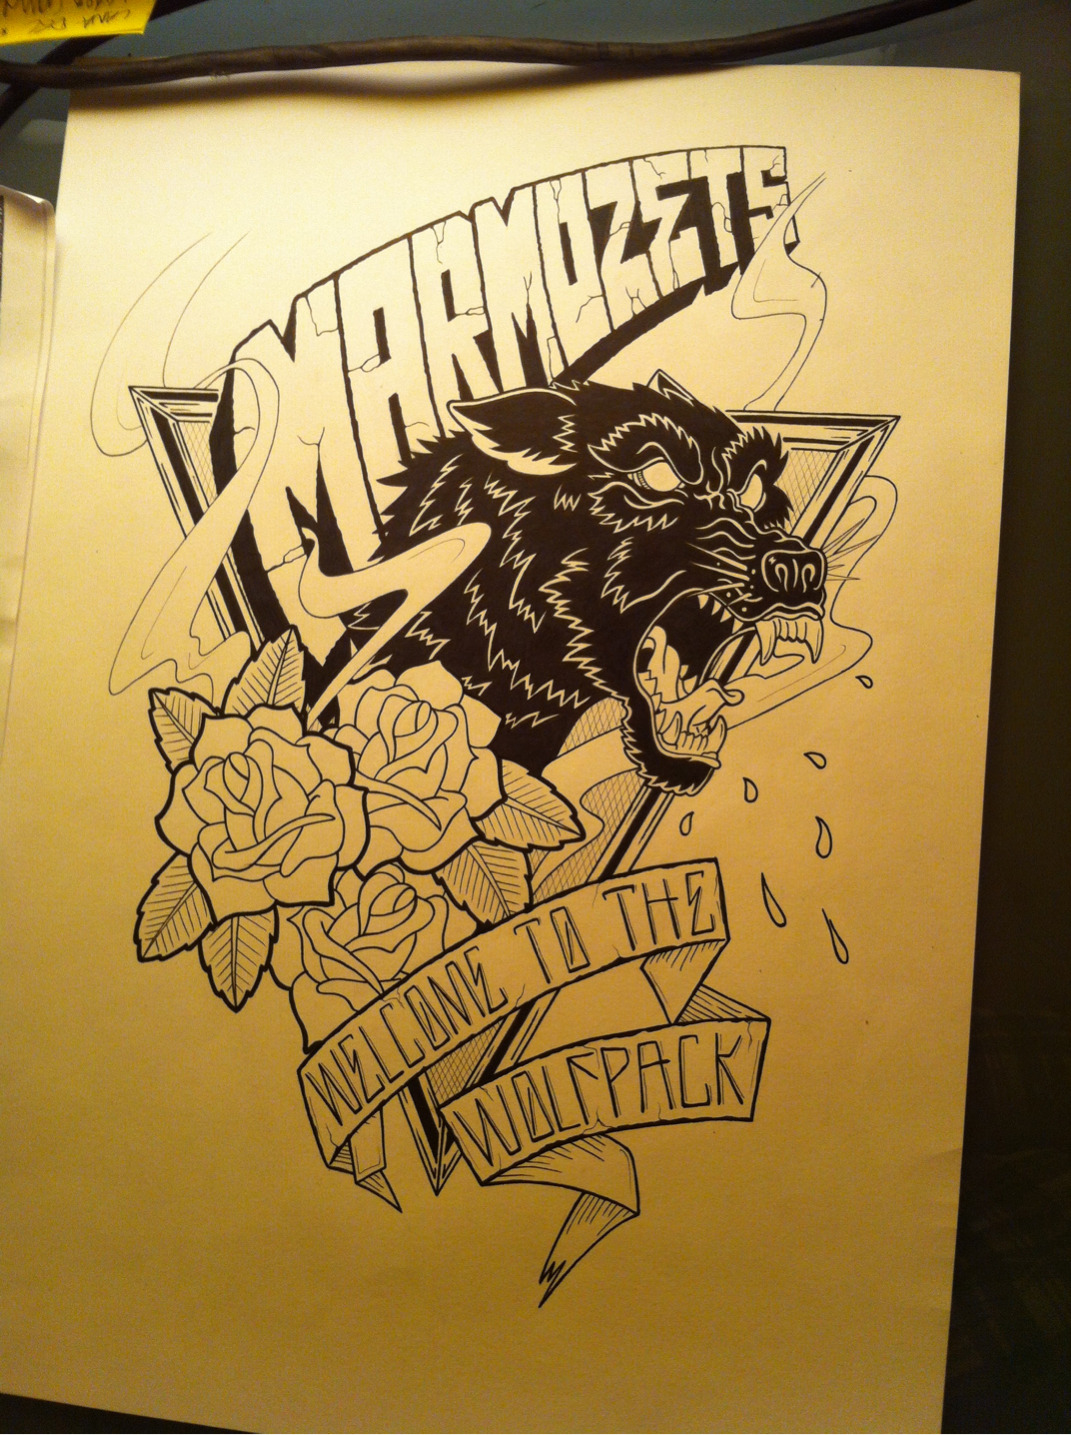 Marmozets. It's OK. Work in progress.